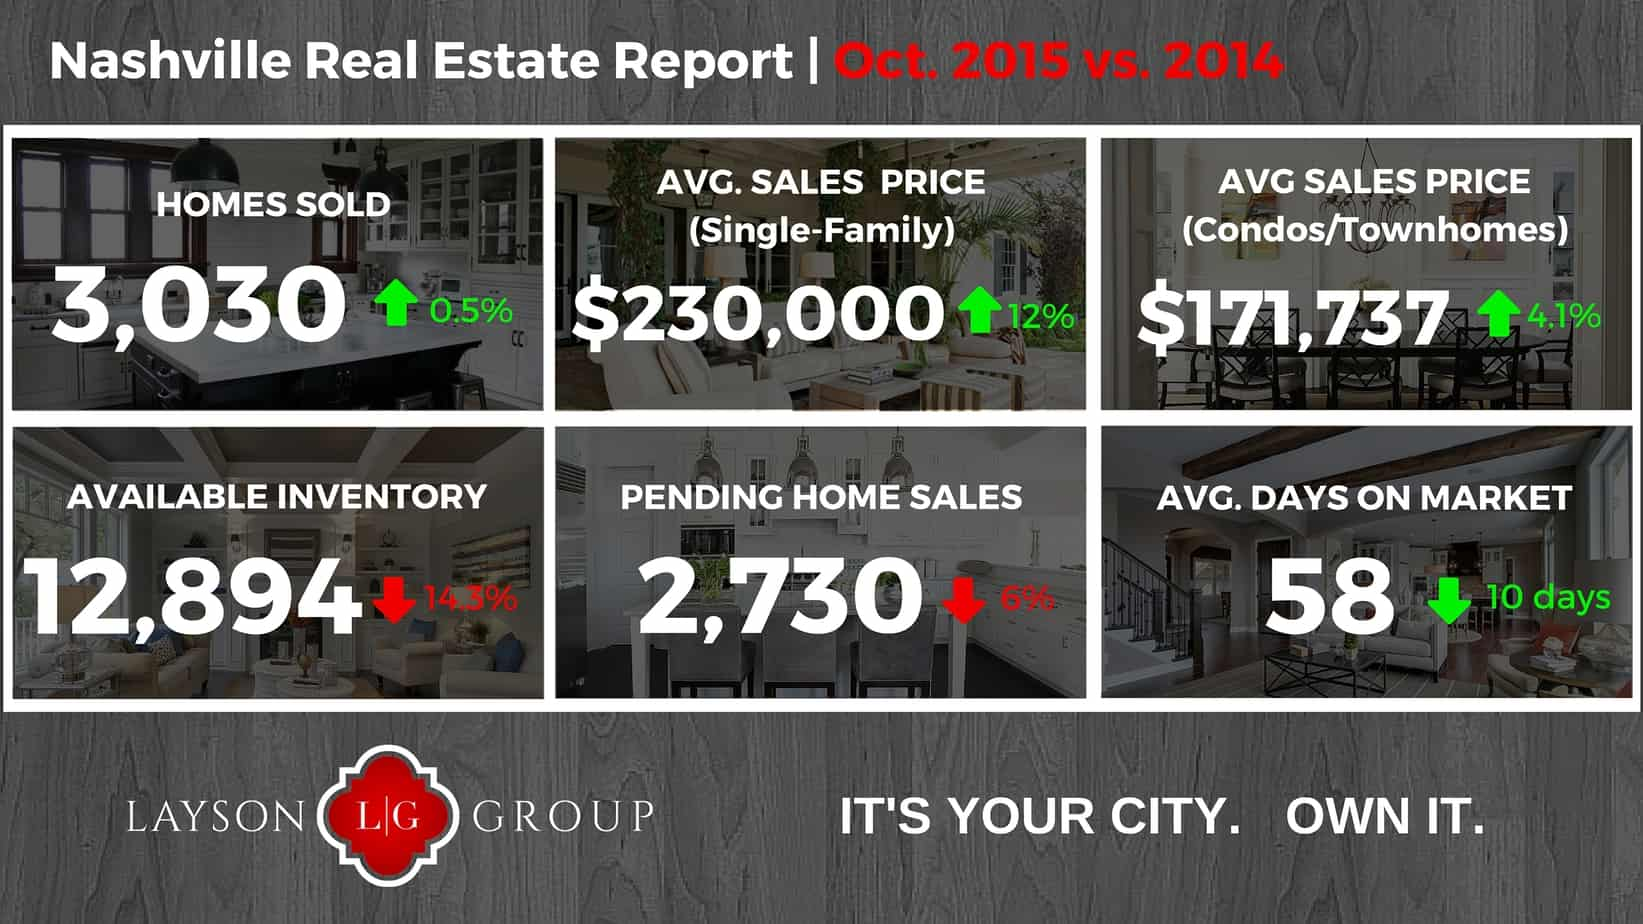 Nashville market report - Oct 2015